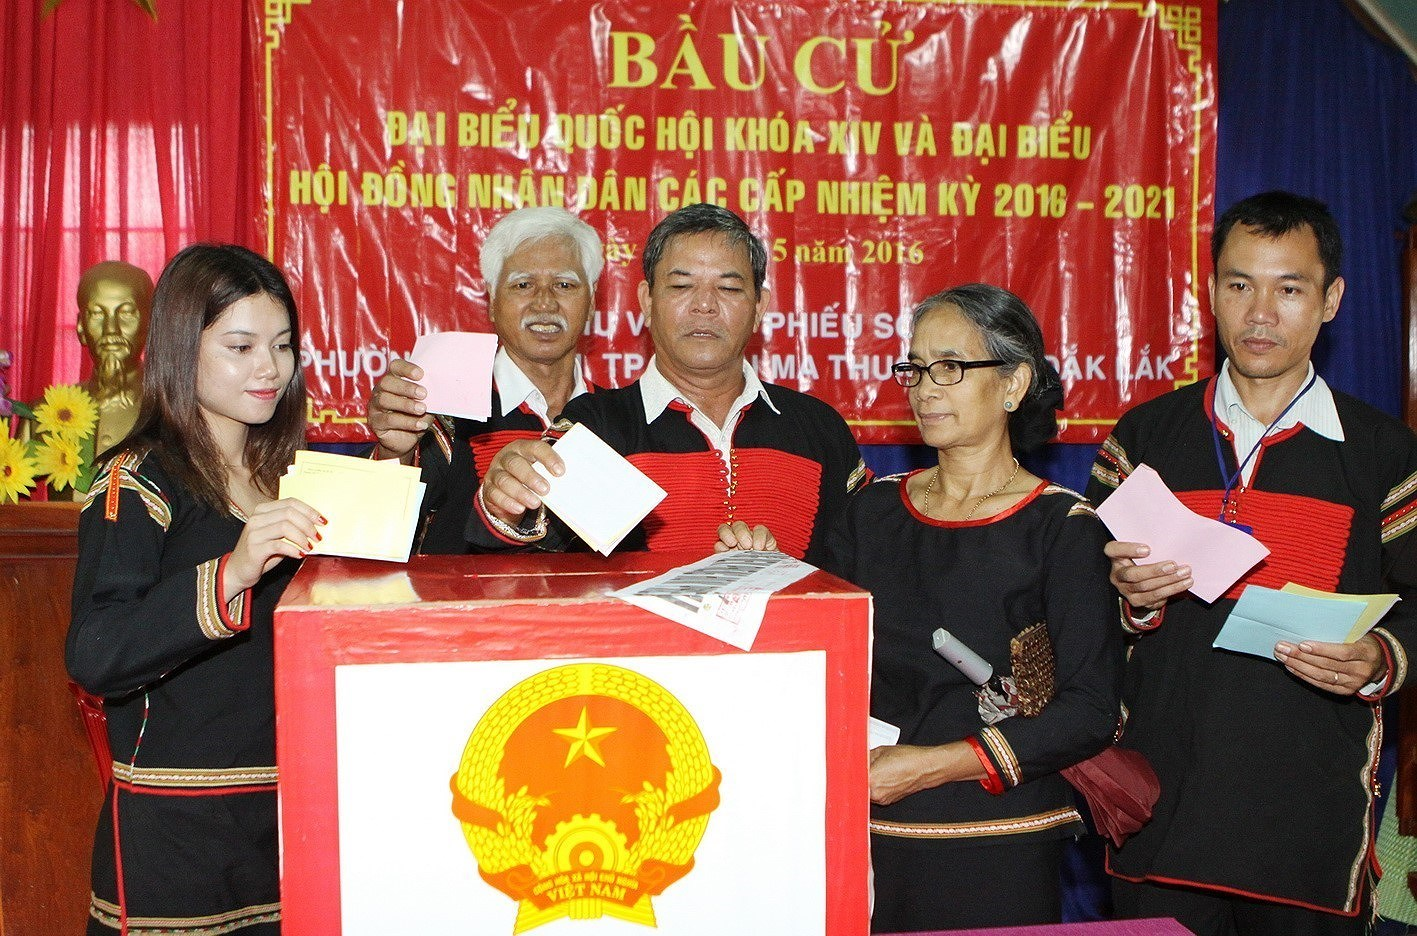 Election Day – festive day of all people hinh anh 1